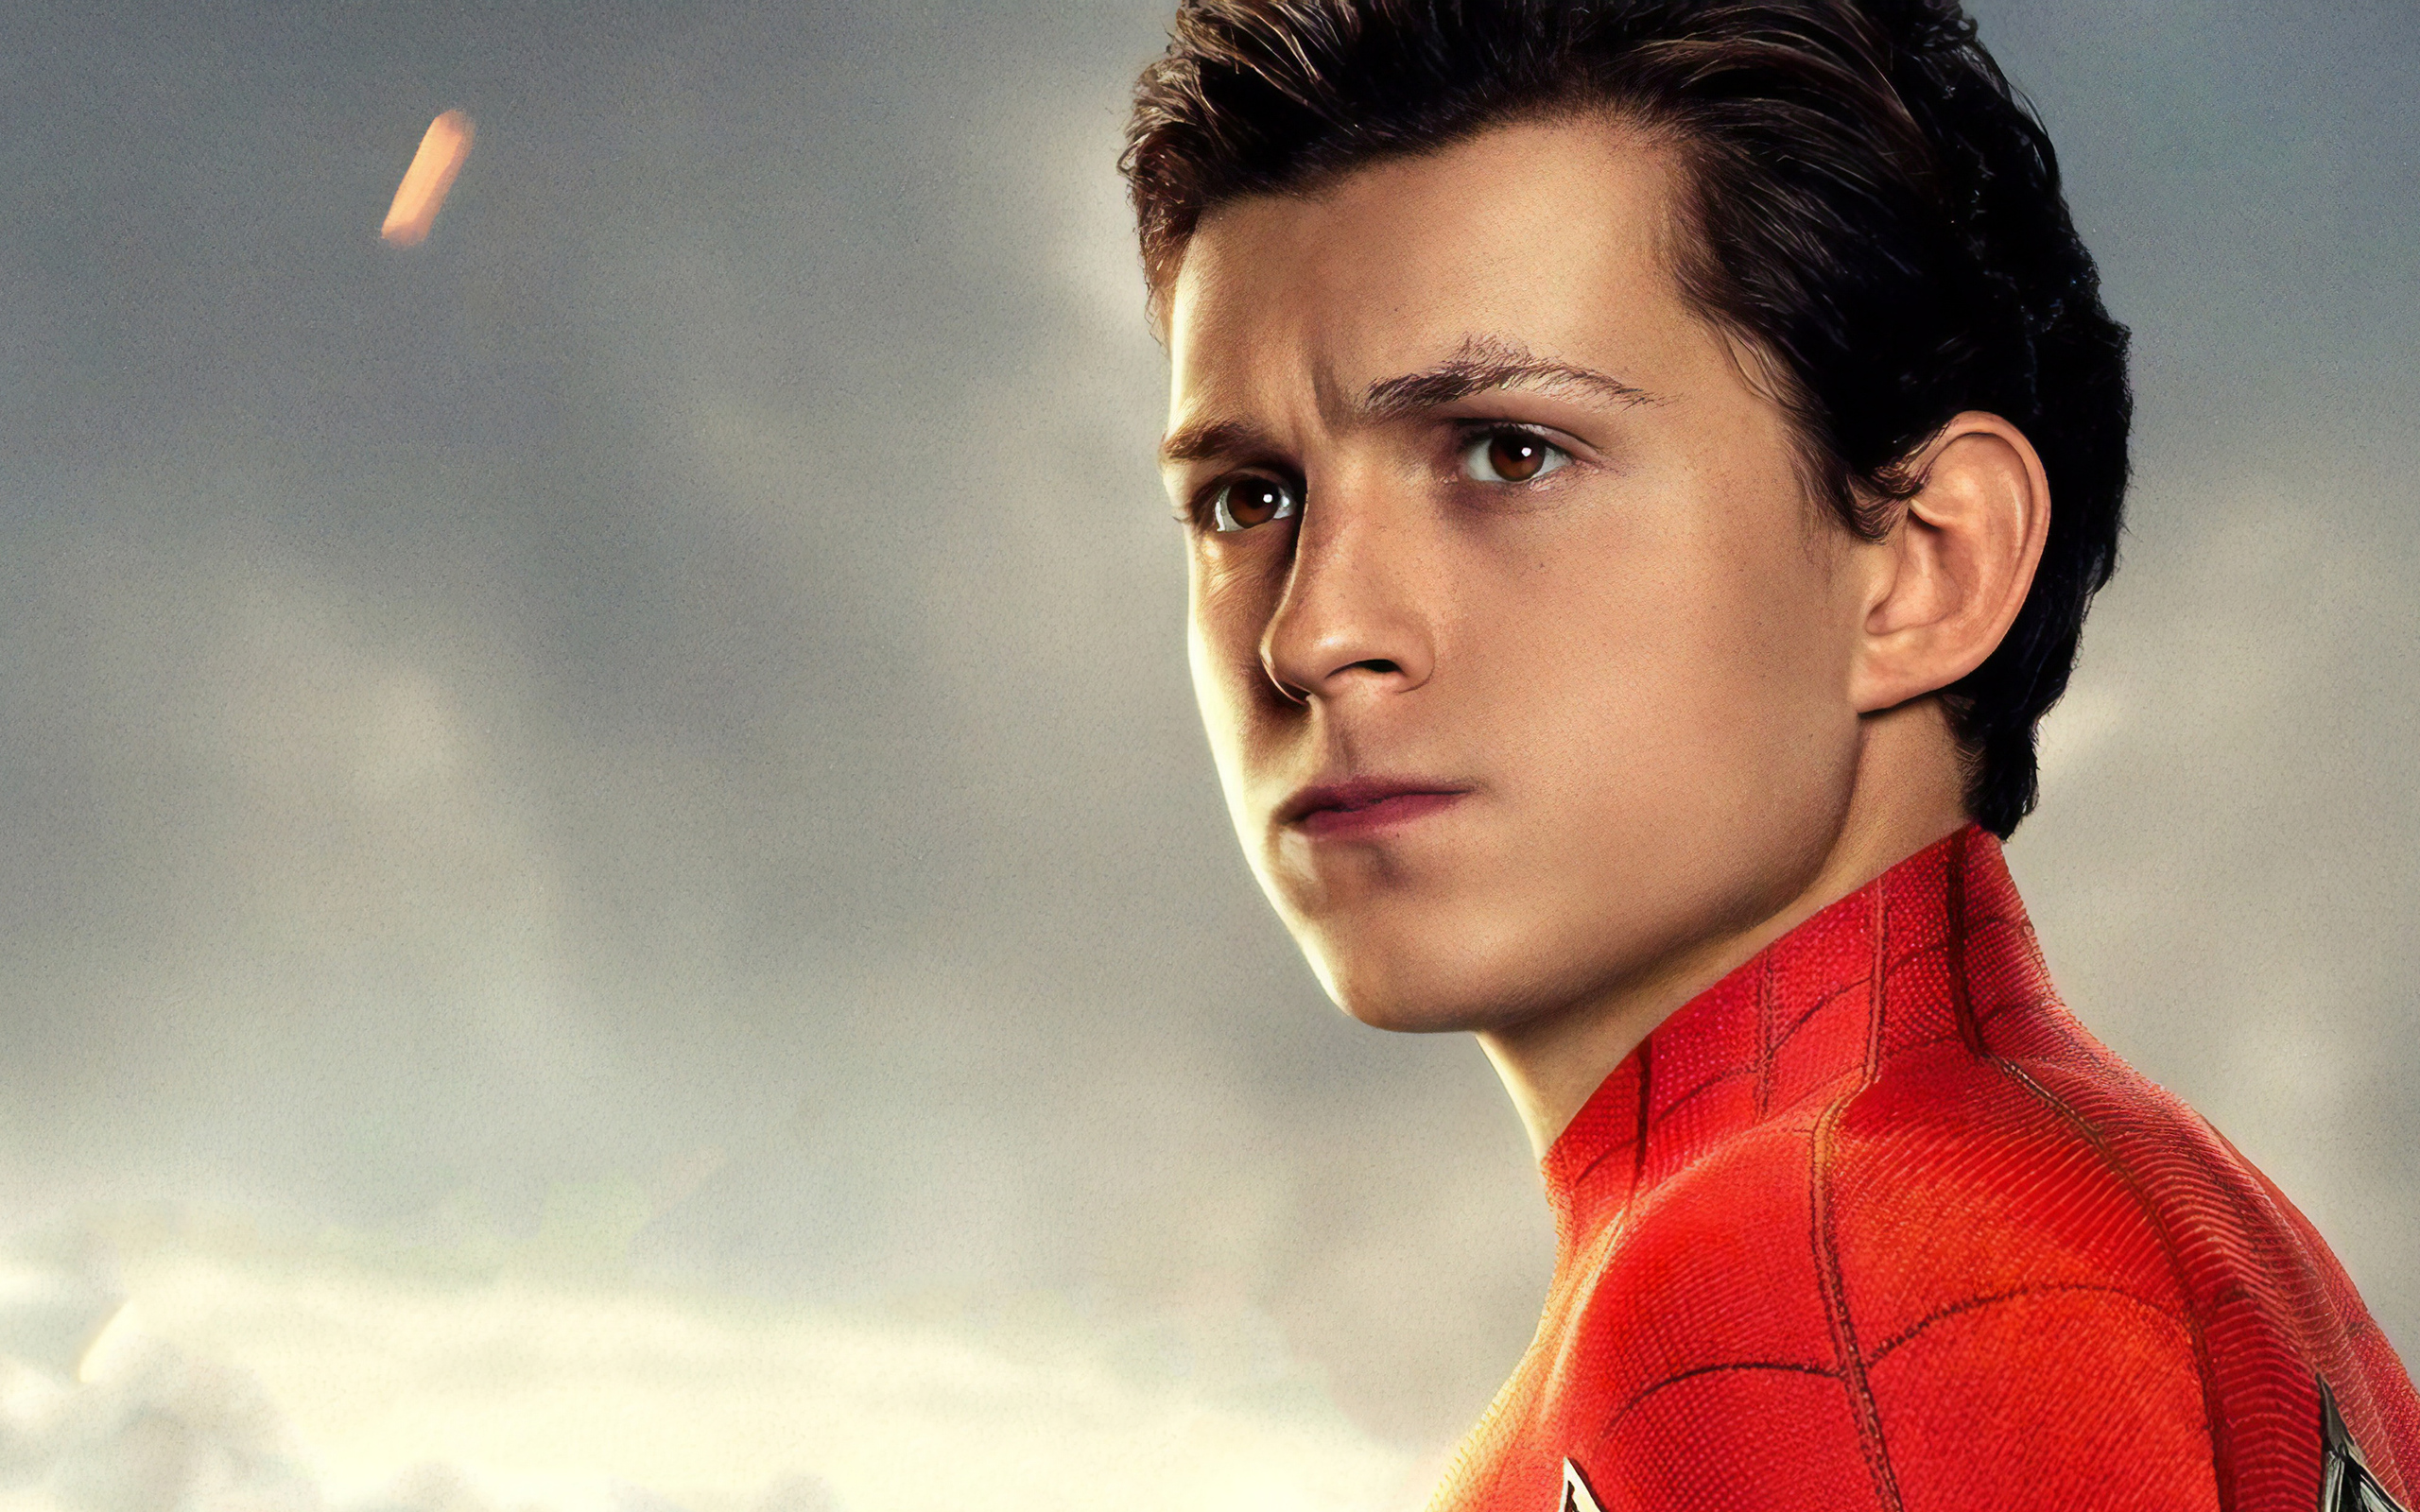 tom-holland-as-peter-parker-spider-man-far-from-home-poster-bh.jpg